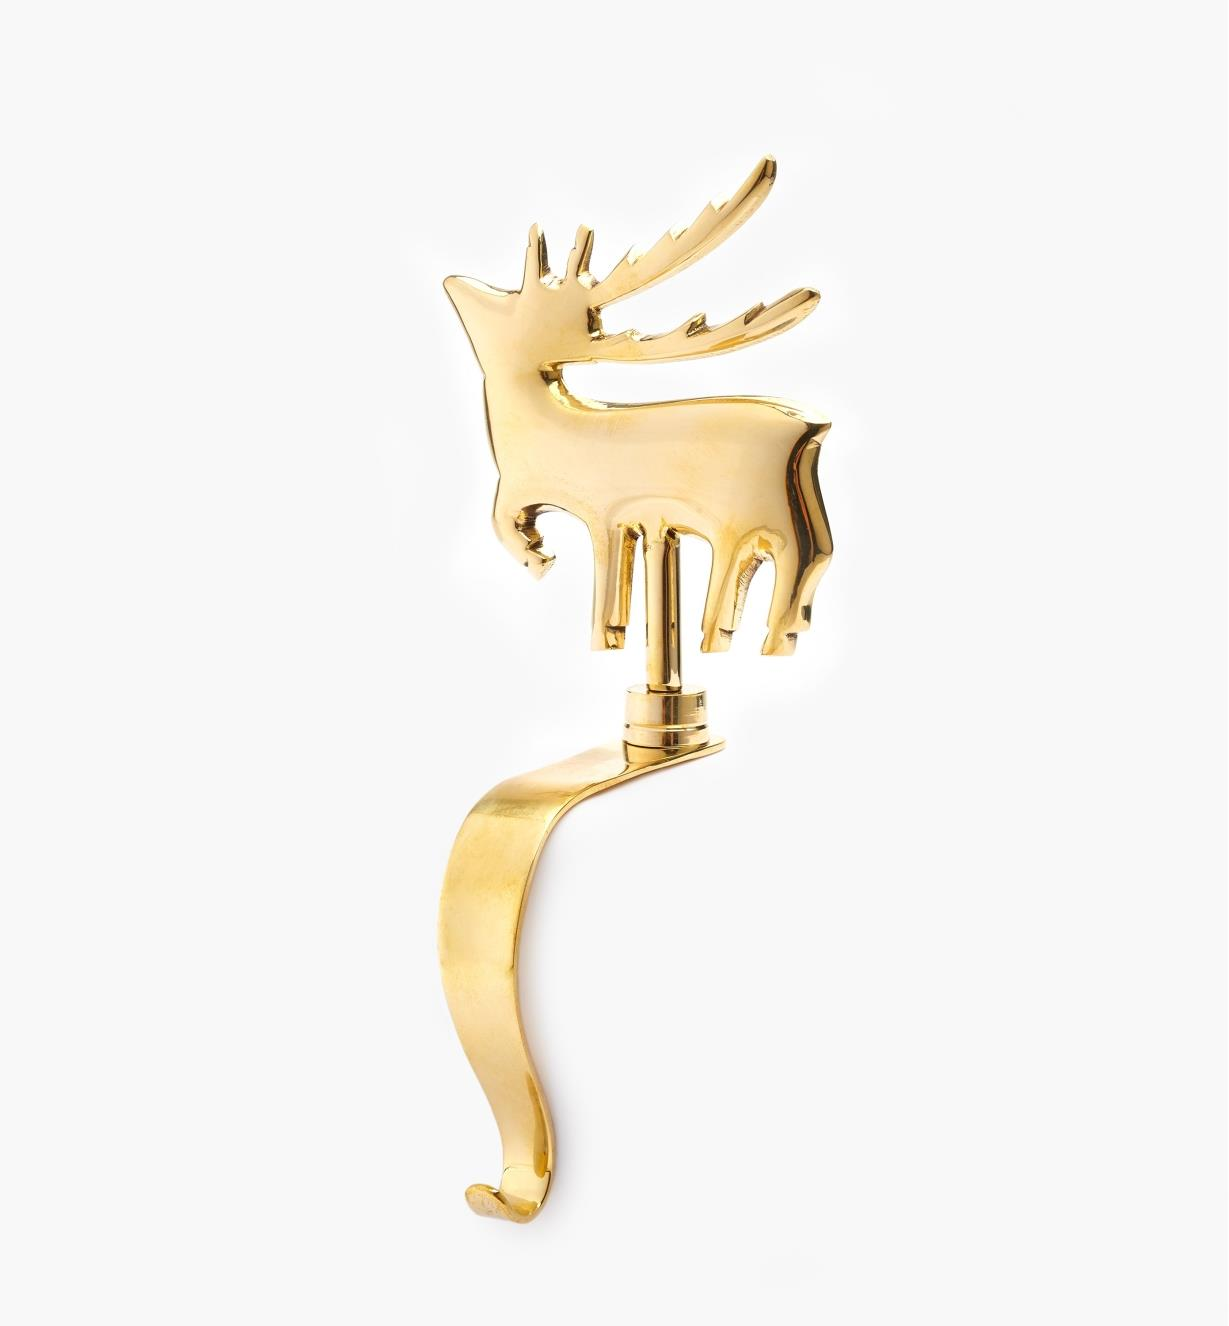 45K1945 - Brass Reindeer Stocking Hanger